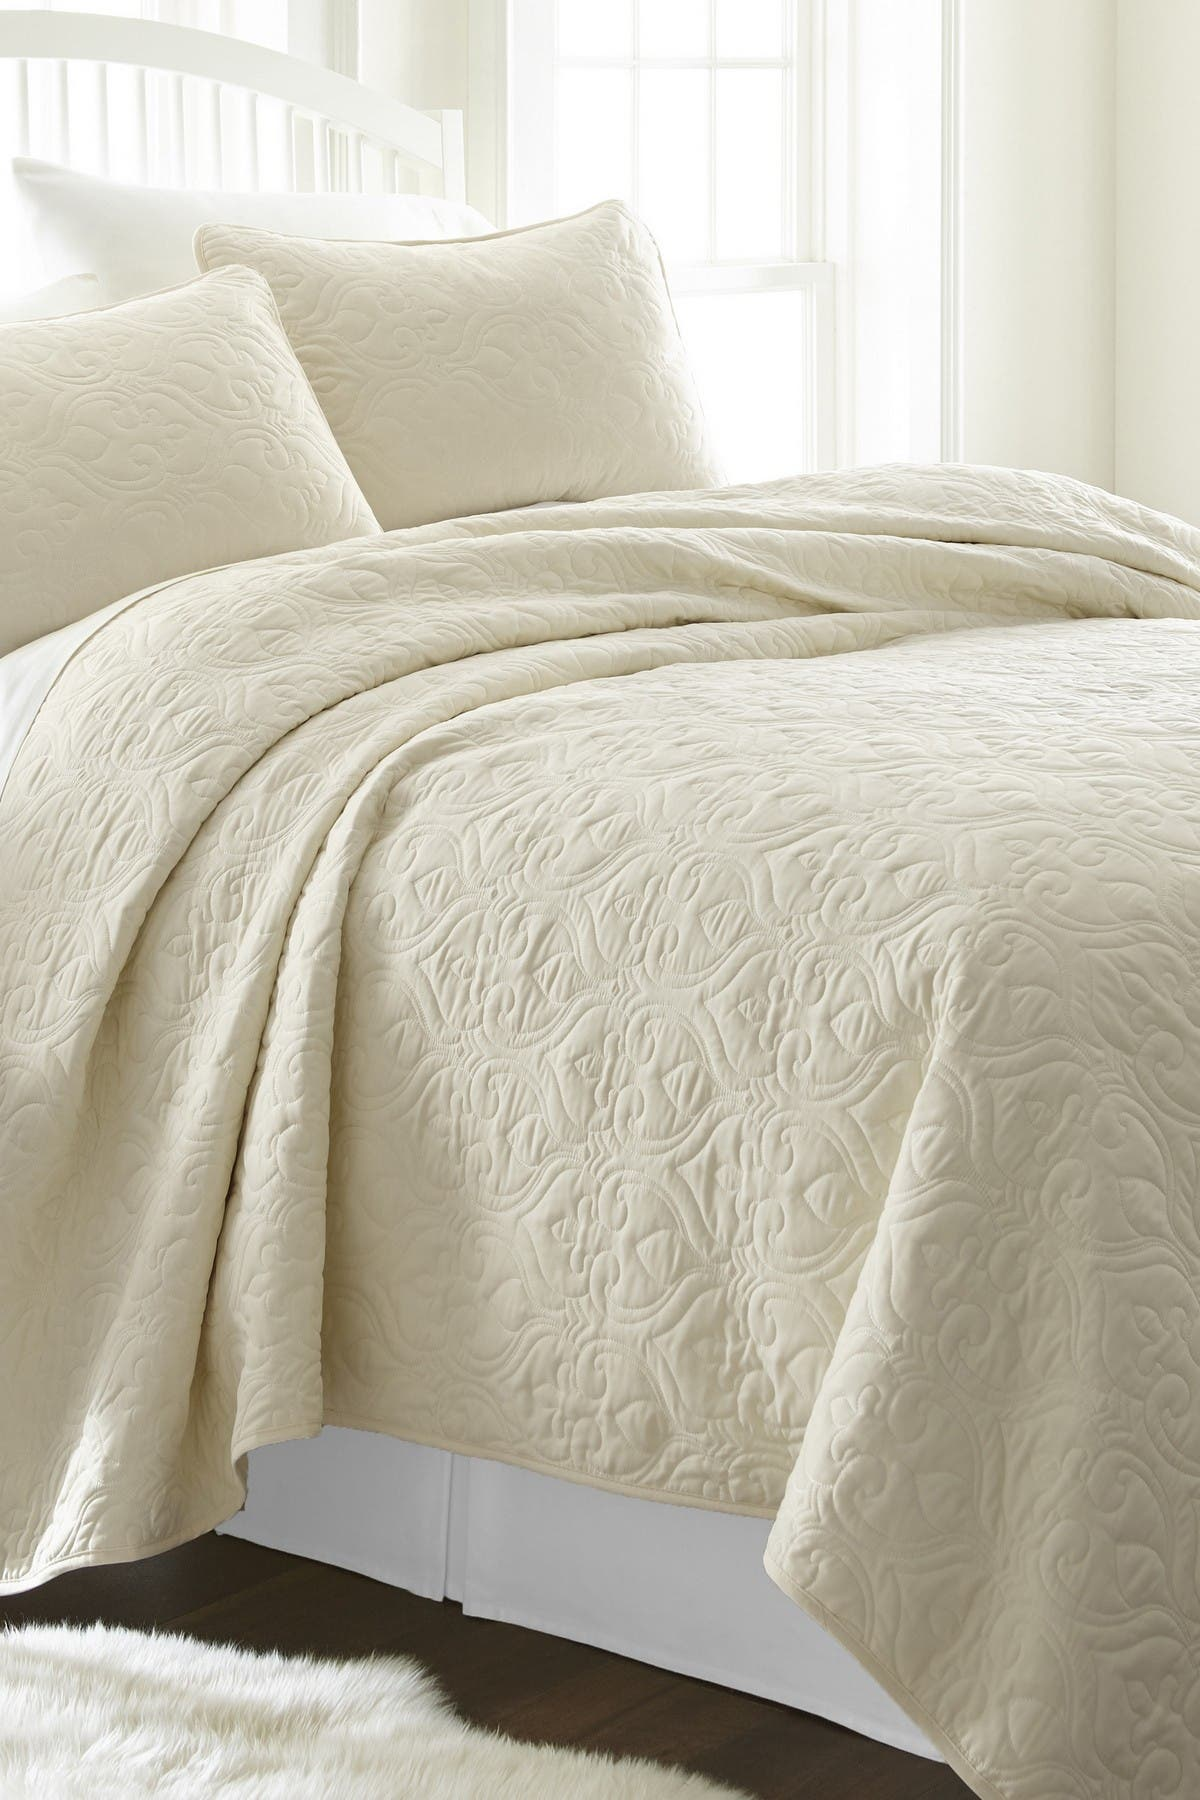 Image of IENJOY HOME Home Spun Premium Ultra Soft Damask Pattern Quilted King Coverlet Set - Ivory